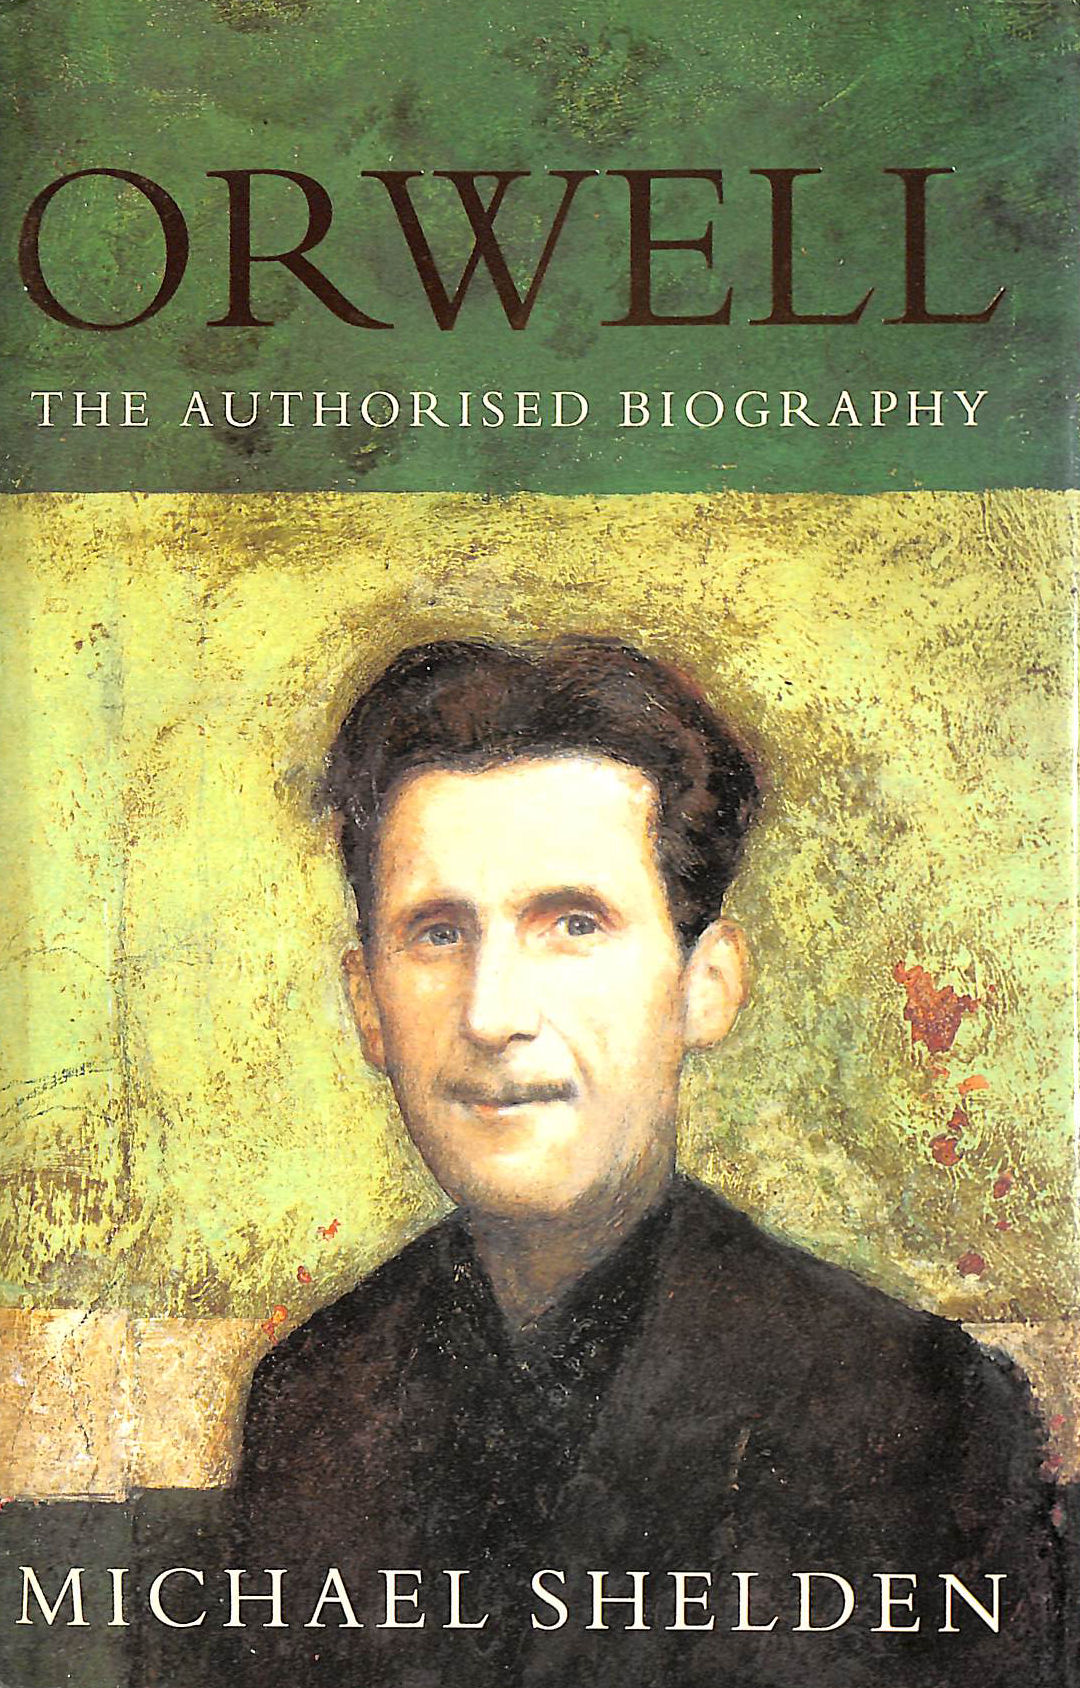 Image for George Orwell: The Authorised Biography